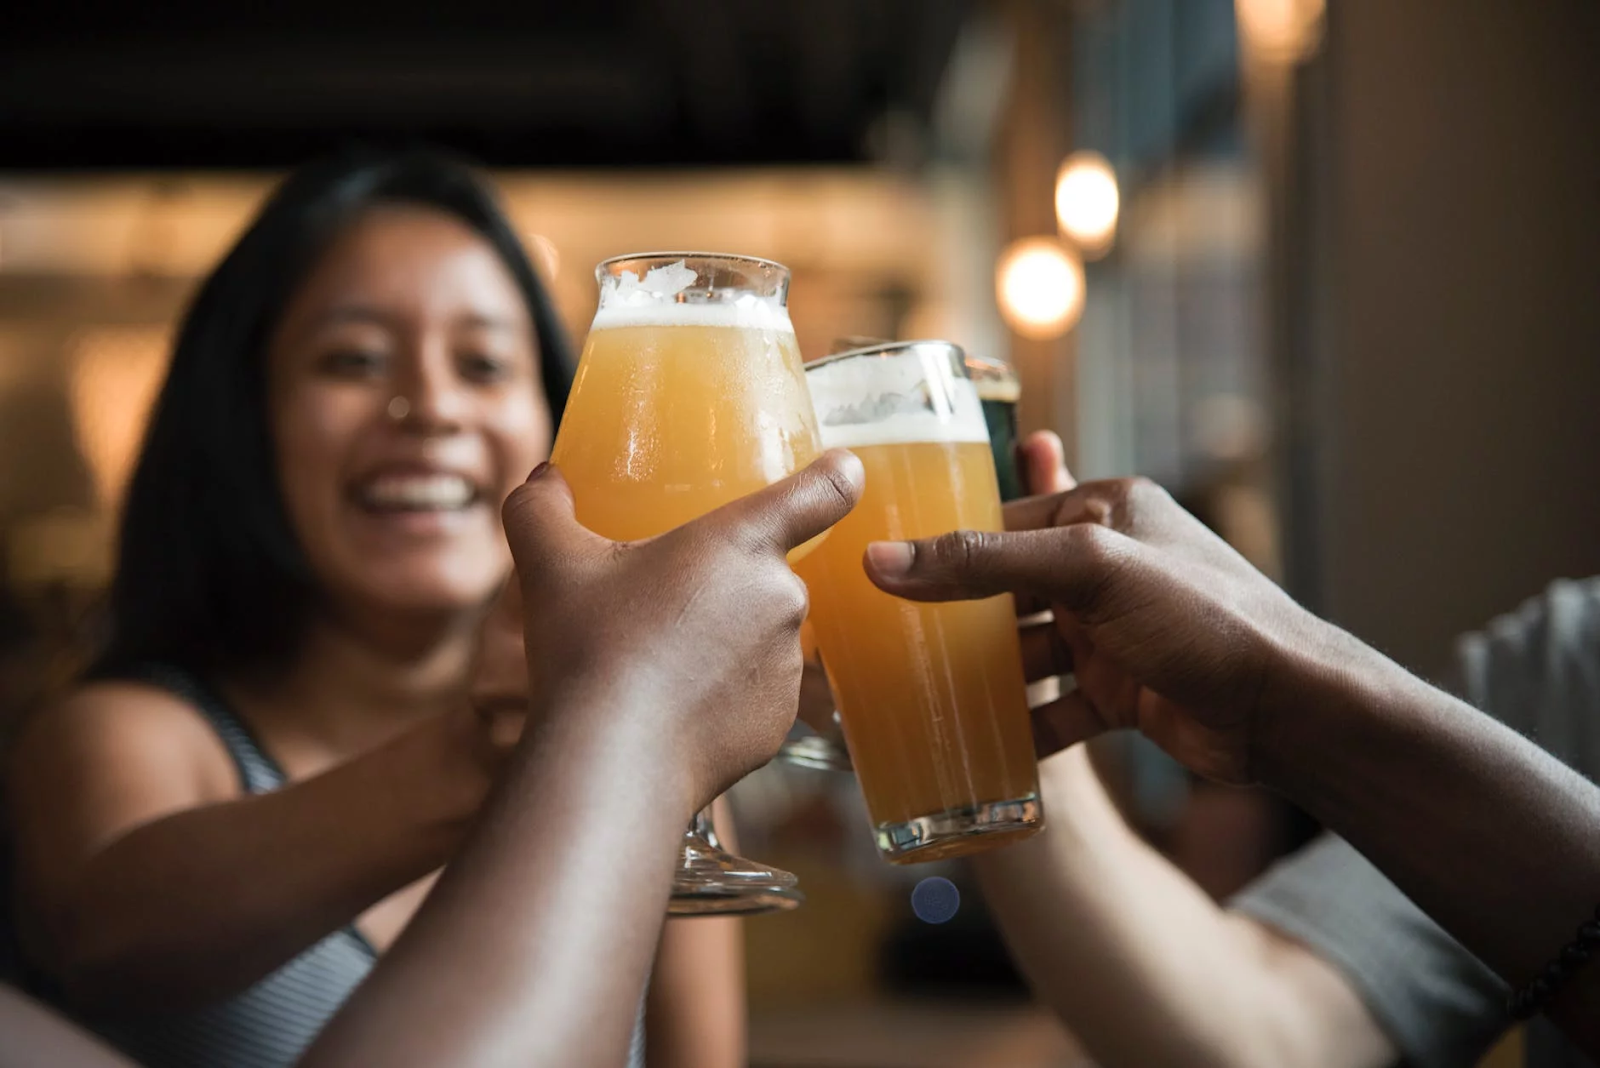 Friends cheers each other with glasses of golden beer